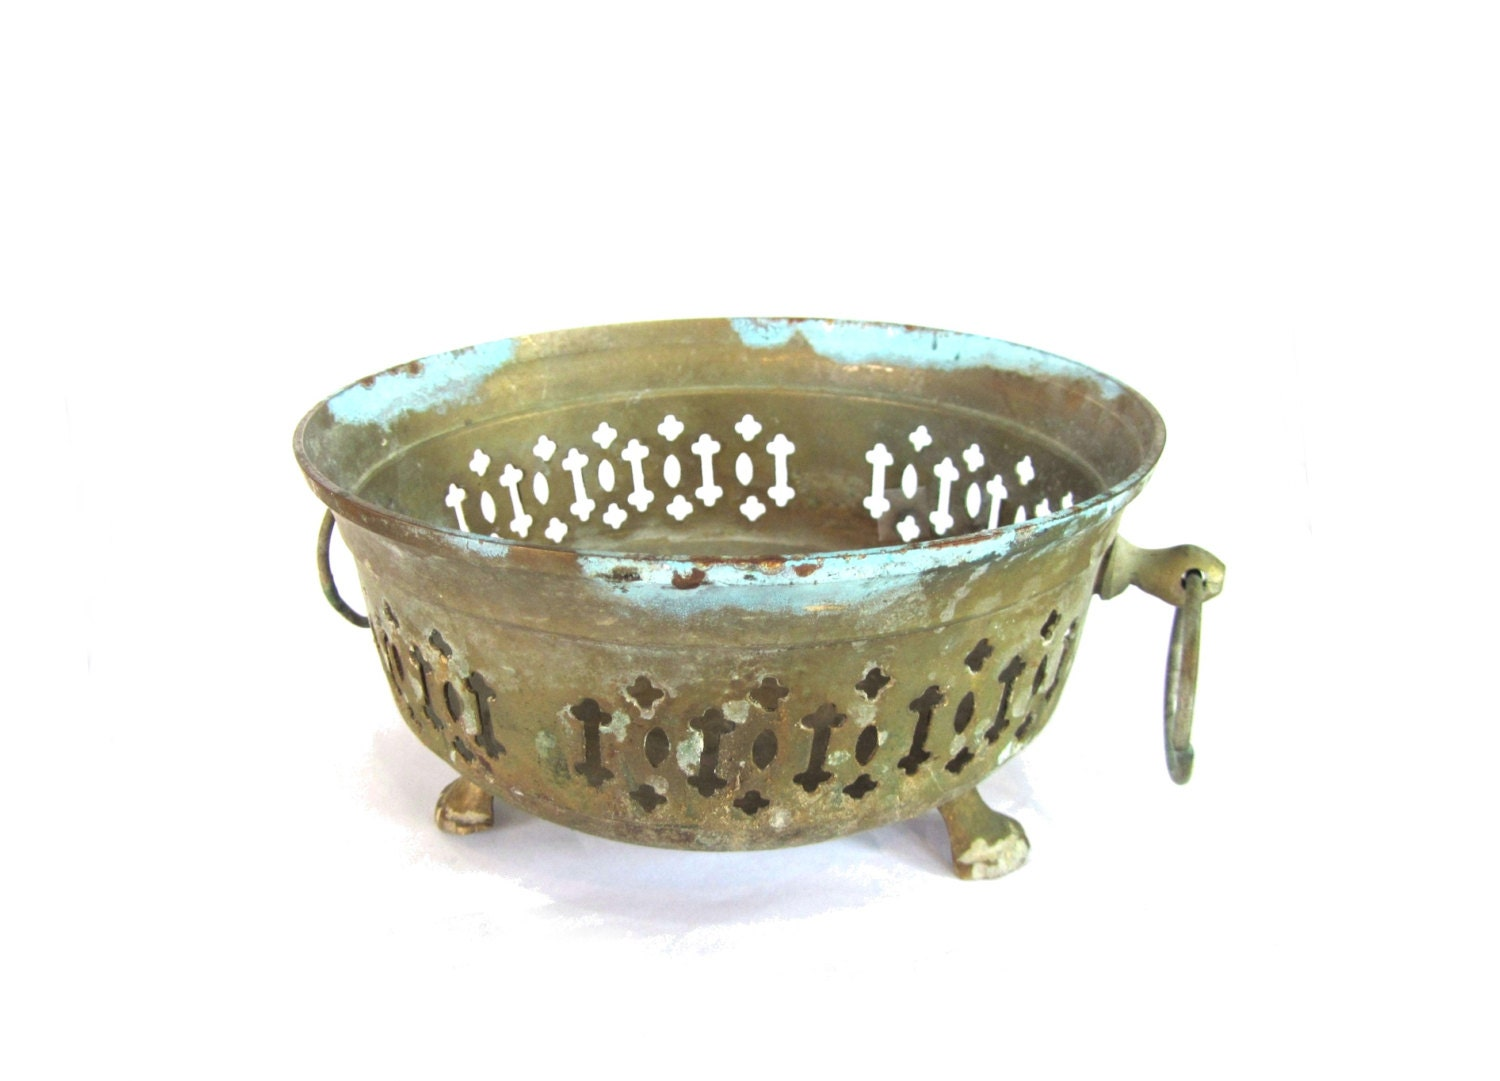 Copper Home Decor Small Bowl Patina Copper Footed Bowl